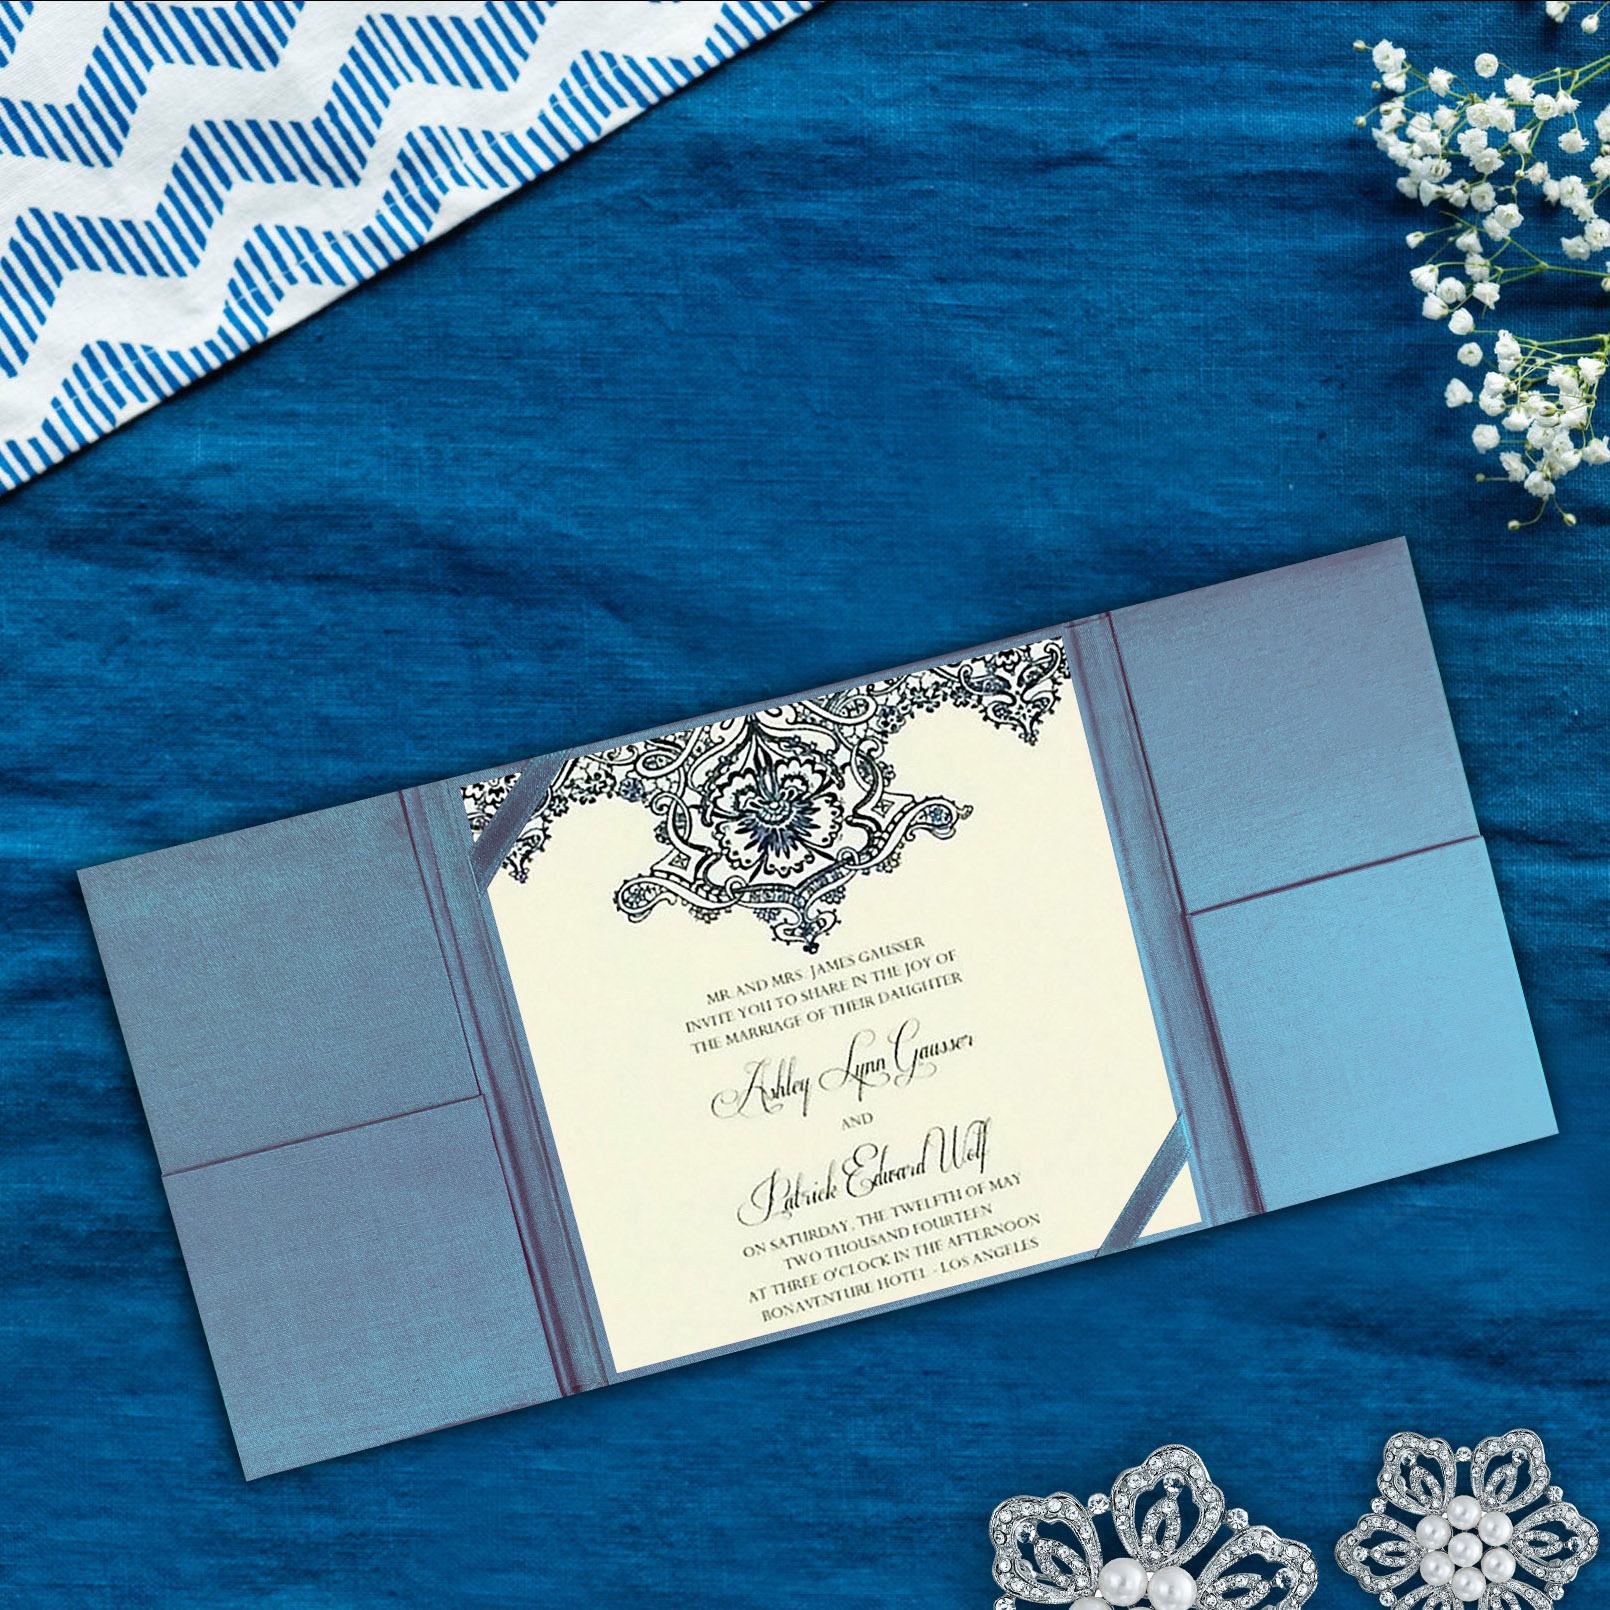 gatefold silk wedding invitation